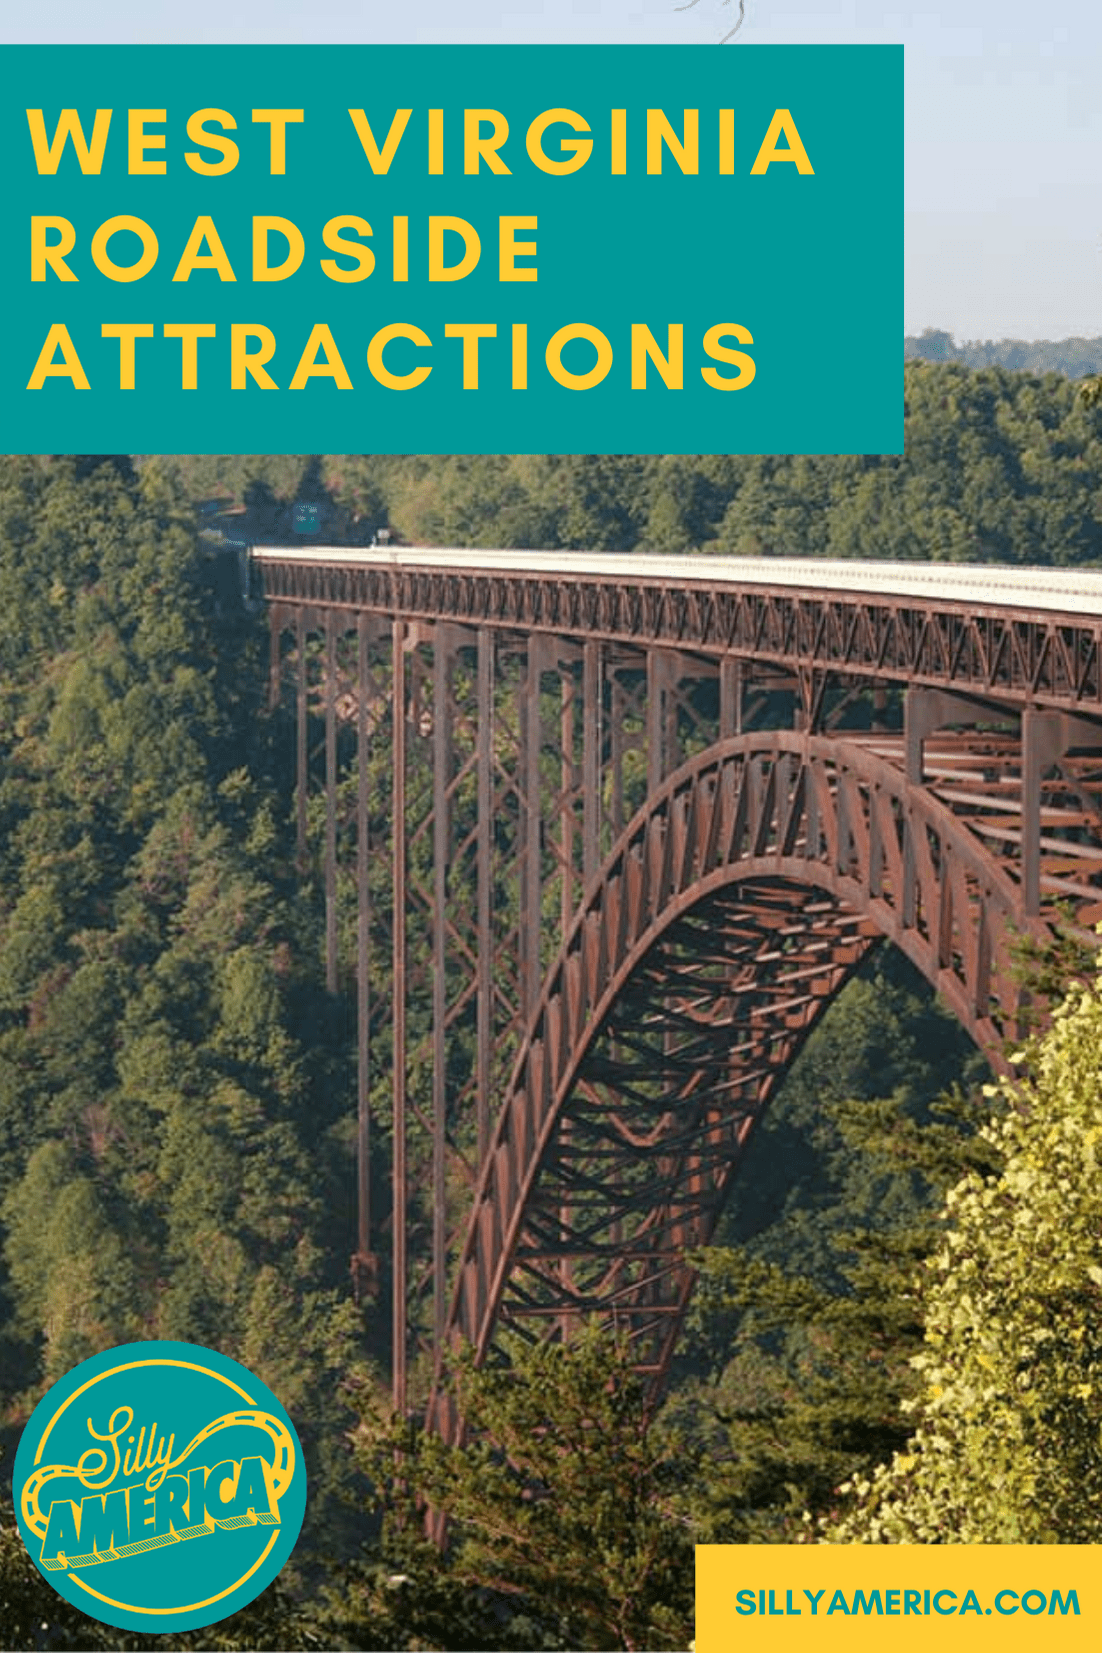 The best West Virginia roadside attractions to visit on a West Virginia road trip. Add these roadside oddities to your travel bucket list or itinerary! Weird roadside attractions and road trip stops for kids or adults. #WestVirginiaRoadsideAttractions #WestVirginiaRoadsideAttraction #RoadsideAttractions #RoadsideAttraction #RoadTrip #WestVirginiaRoadTrip #WestVirginiaTravelRoadTrip #ThingsToDoInWestVirginia #WestVirginiaMountainsRoadTrip #WeirdRoadsideAttractions